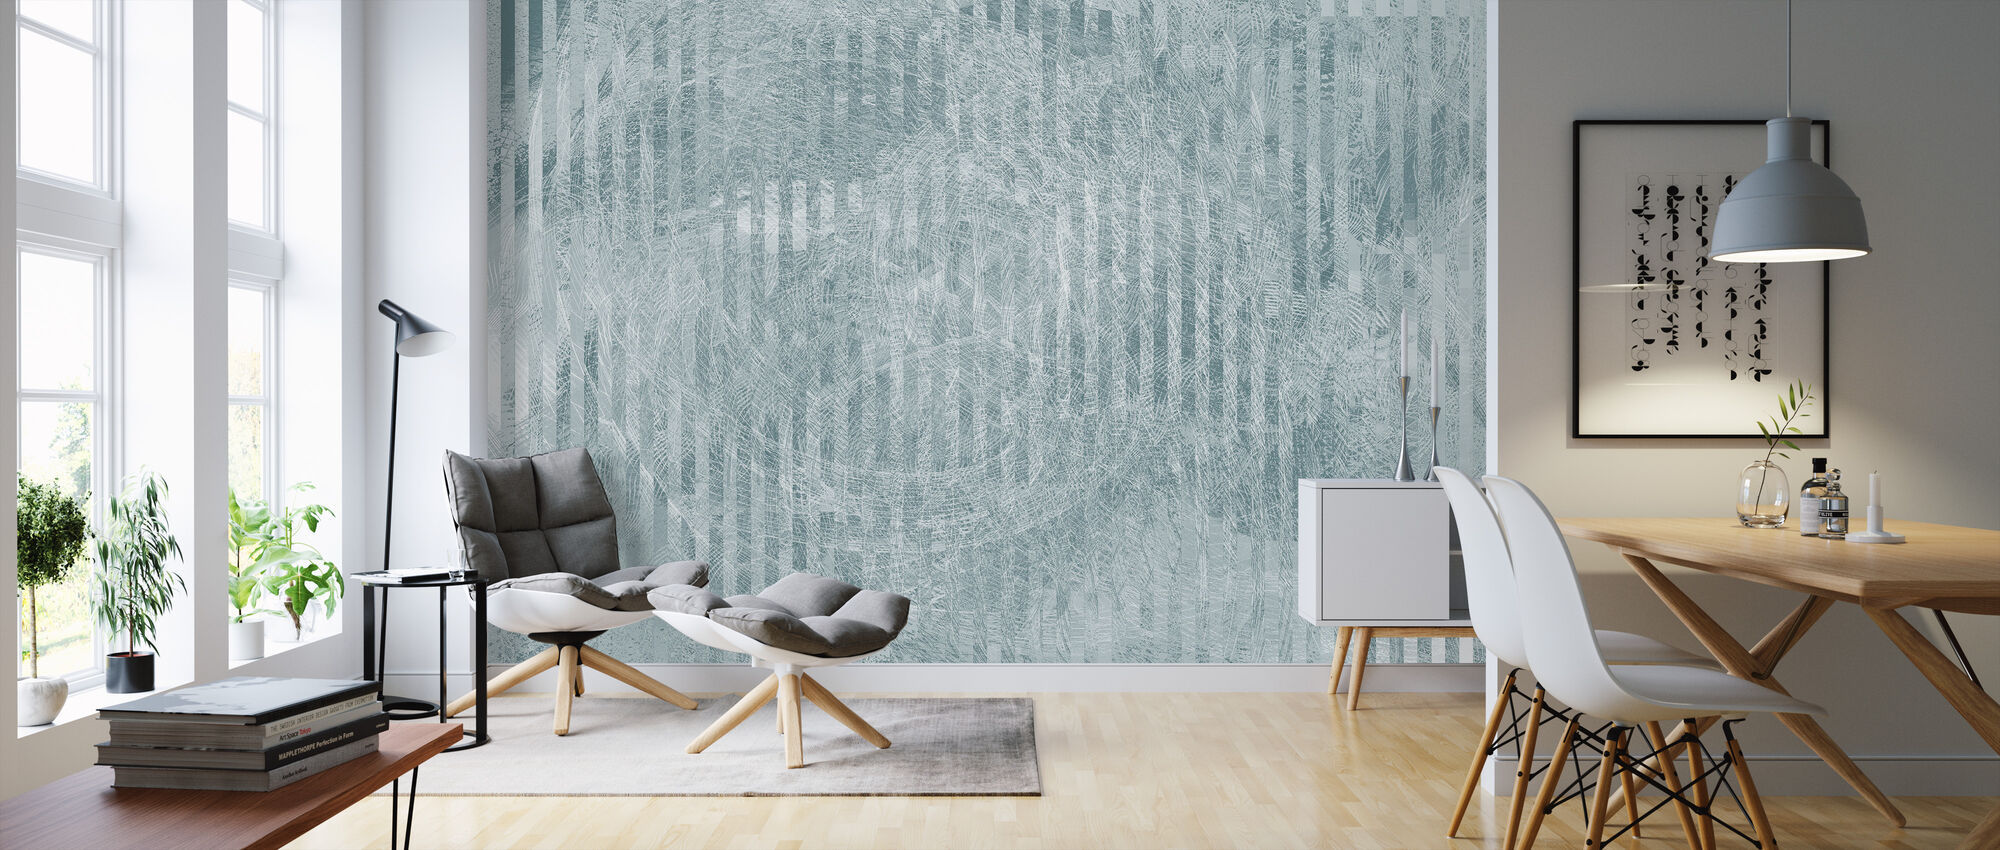 Specular Reflection - Blue Grey - Wallpaper - Living Room